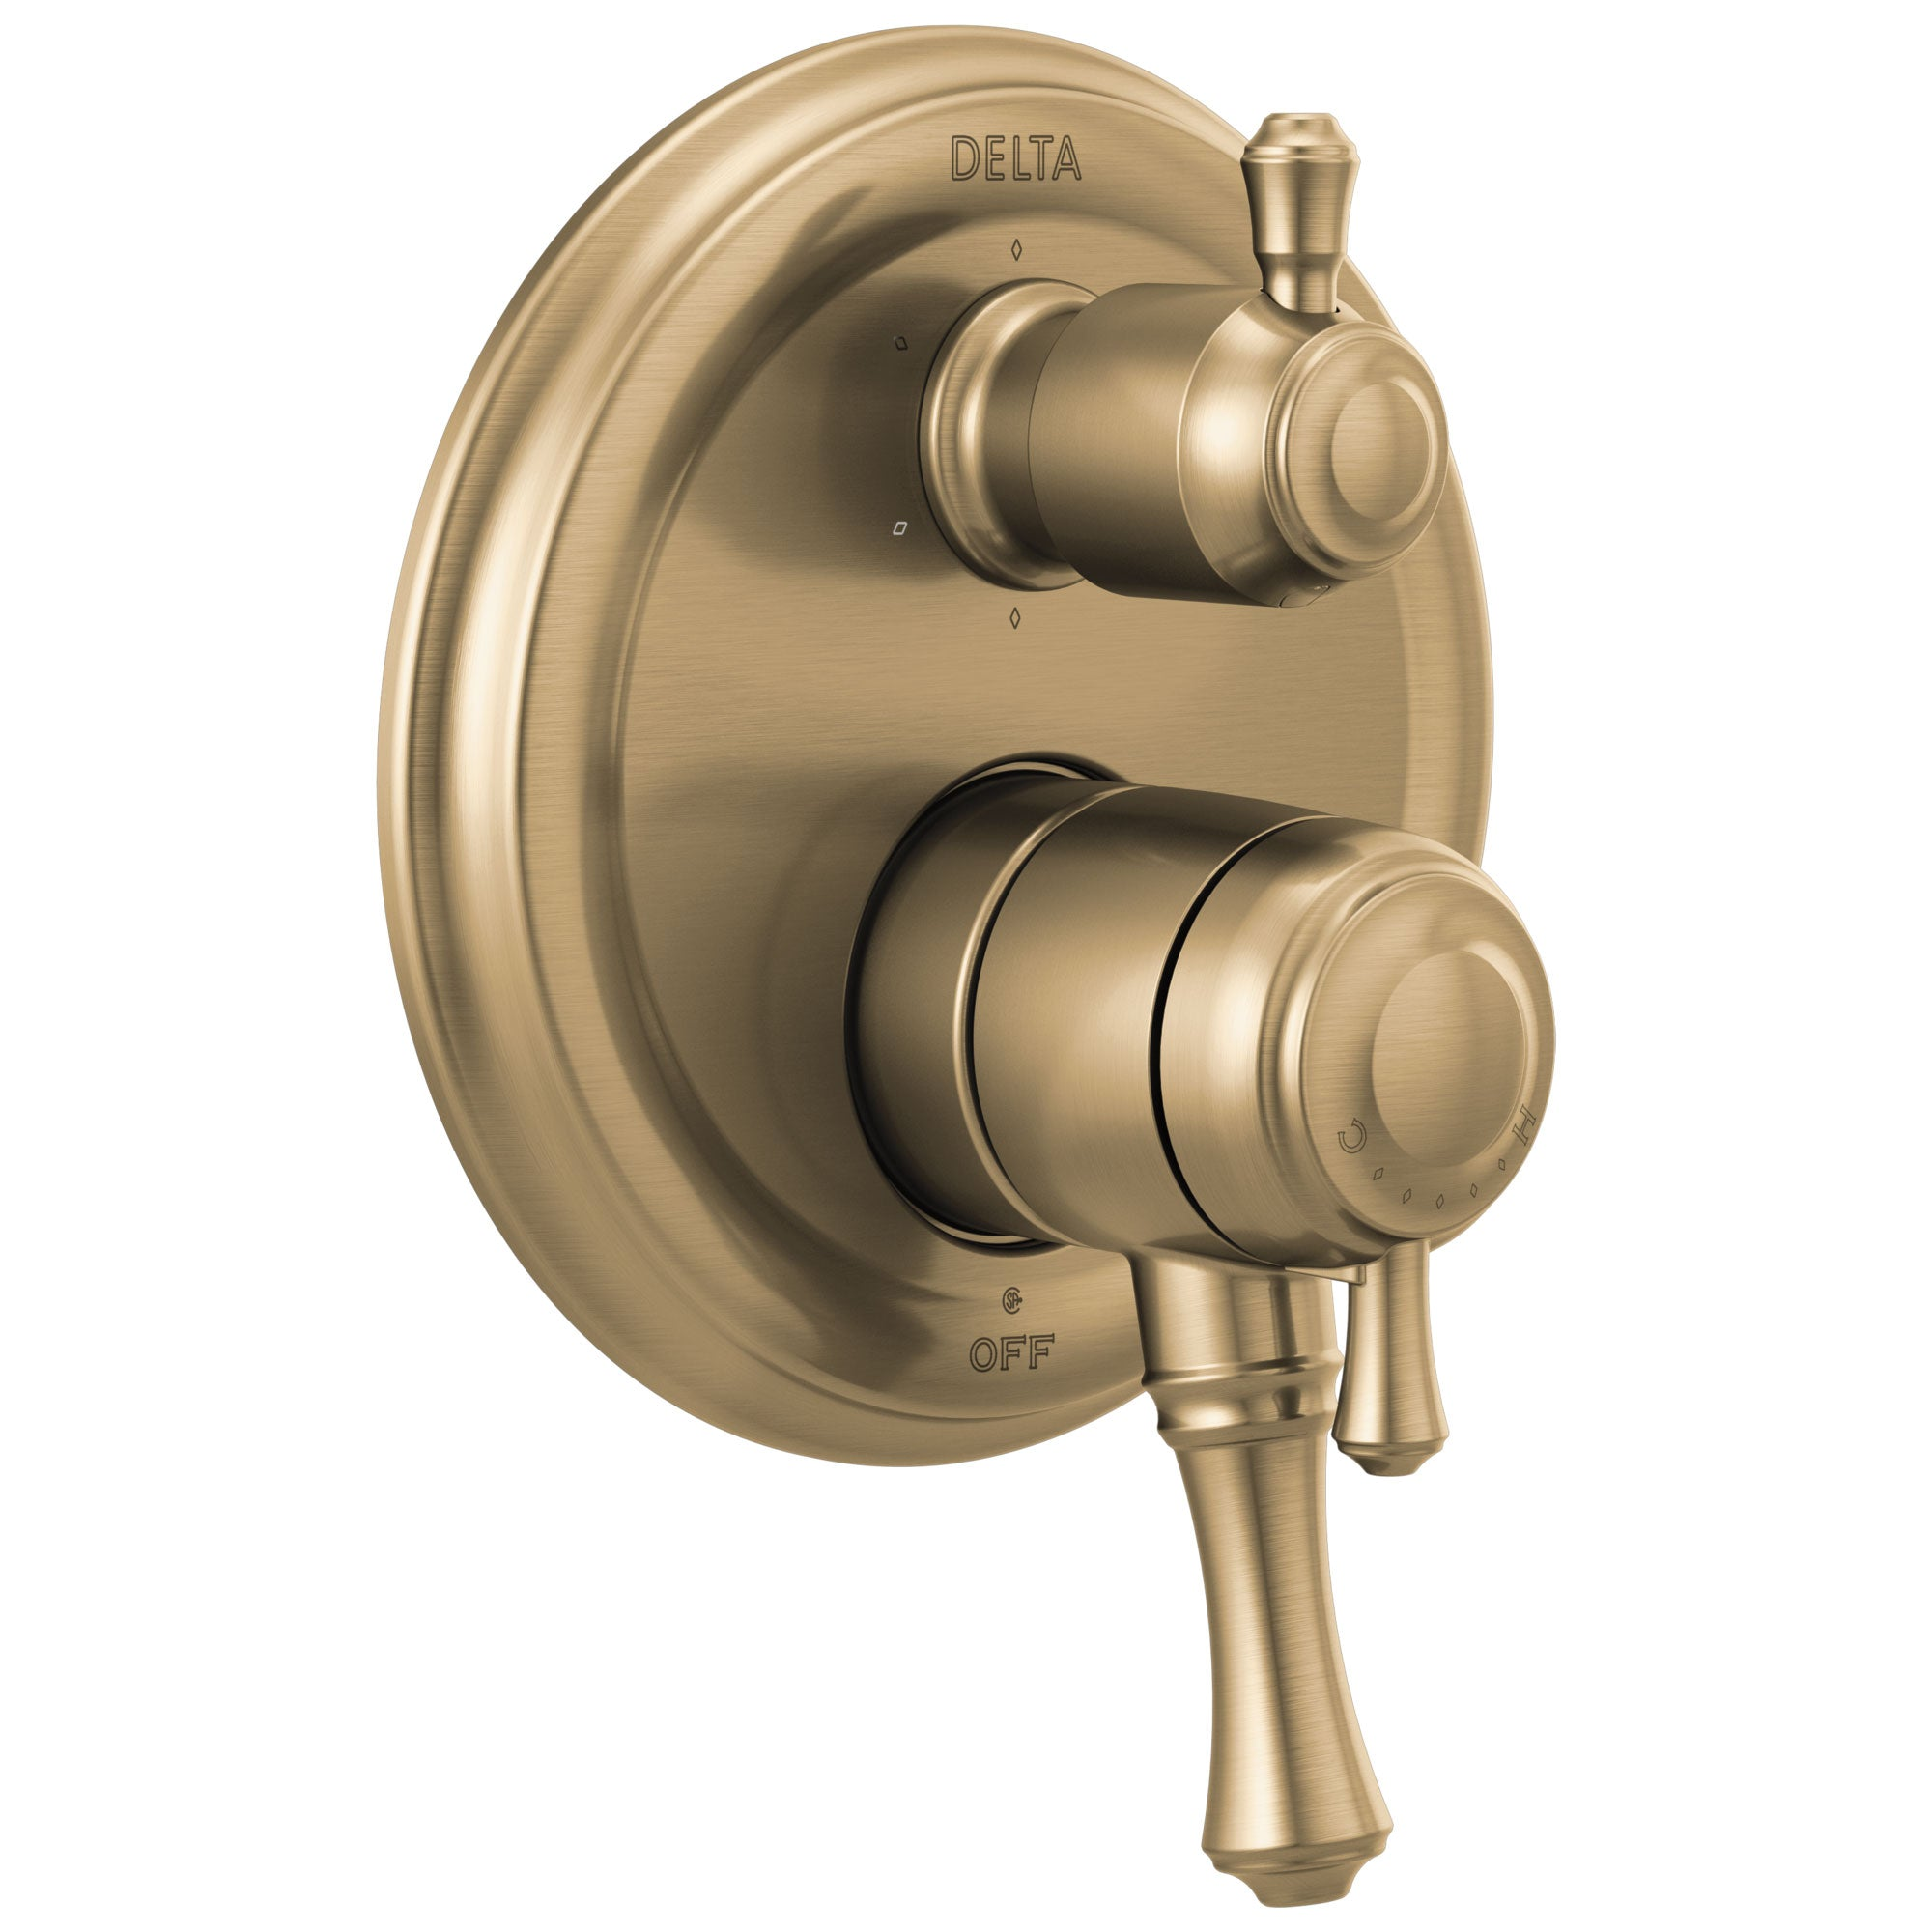 Delta Cassidy Champagne Bronze Finish Monitor 17 Series Shower System Control with 6-Setting Diverter Includes Rough-in Valve and Handles D3117V